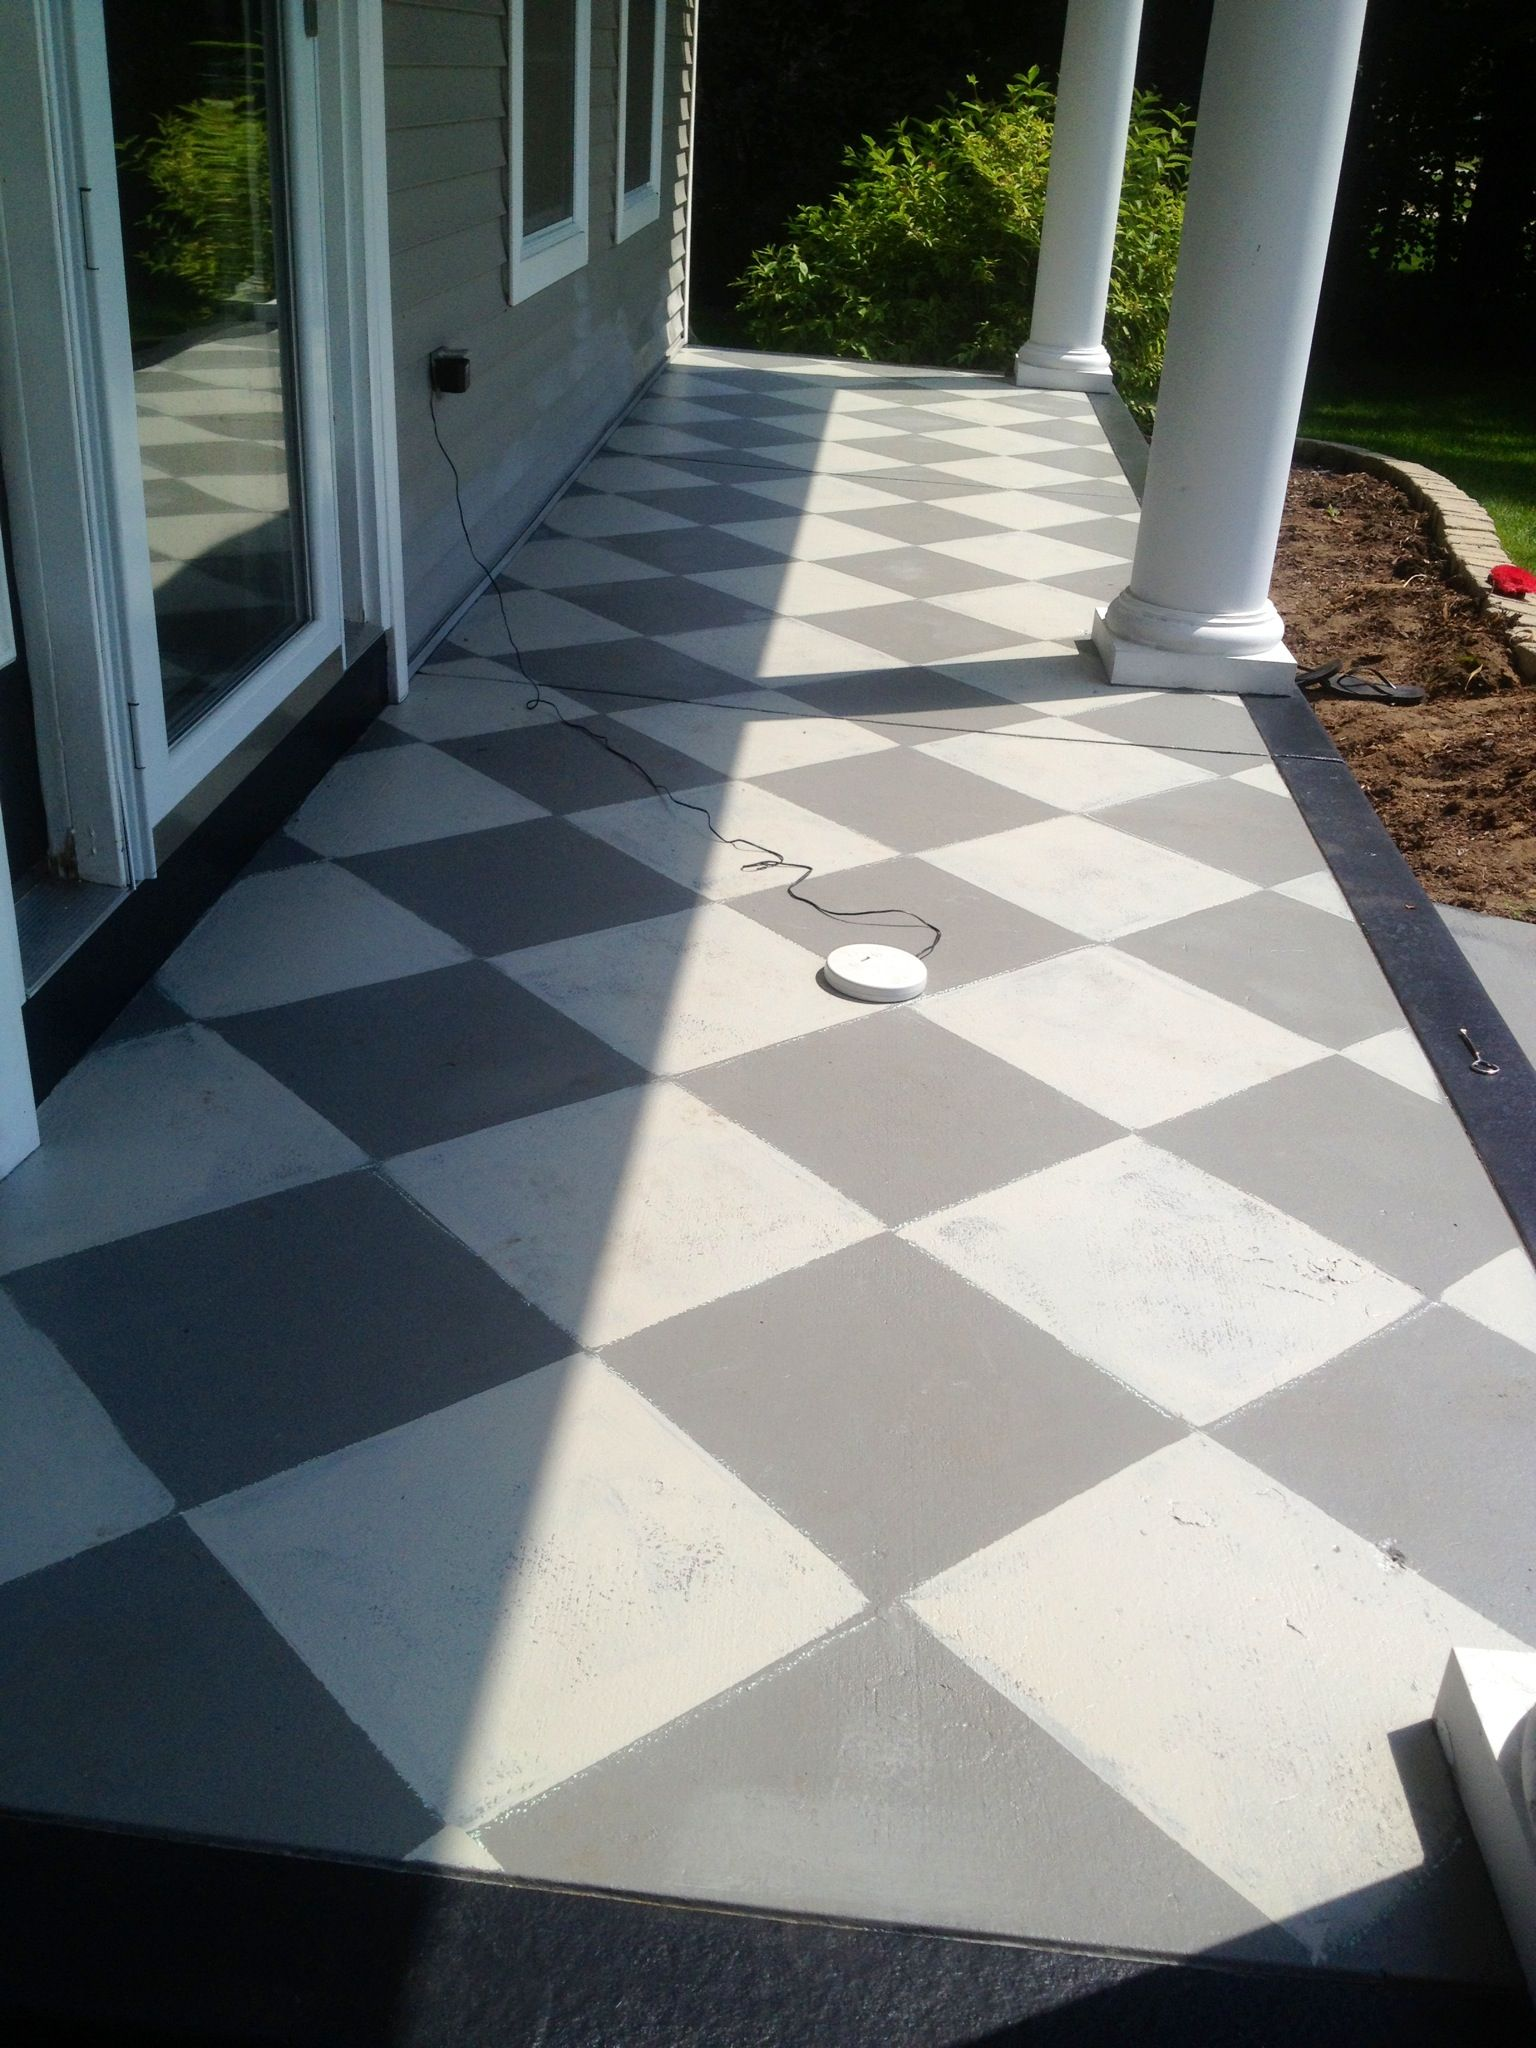 I Painted My Cement Slab Front Porch For An Inexpensive Update